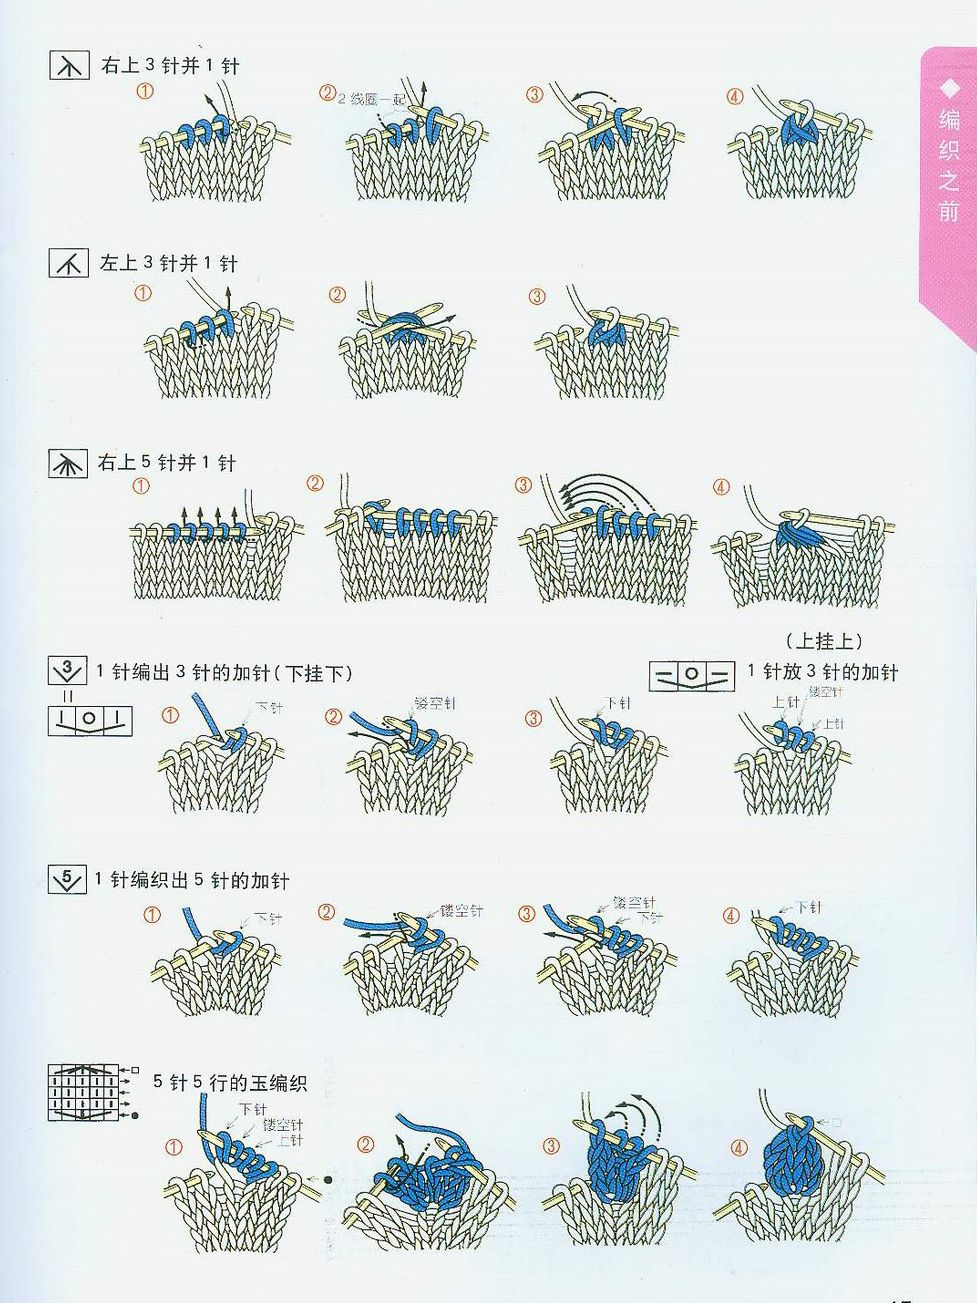 Japanese knitting symbols chart symbols japanese characters and japanese knitting symbols chart symbols japanese characters and associated pictures of how to knit biocorpaavc Gallery